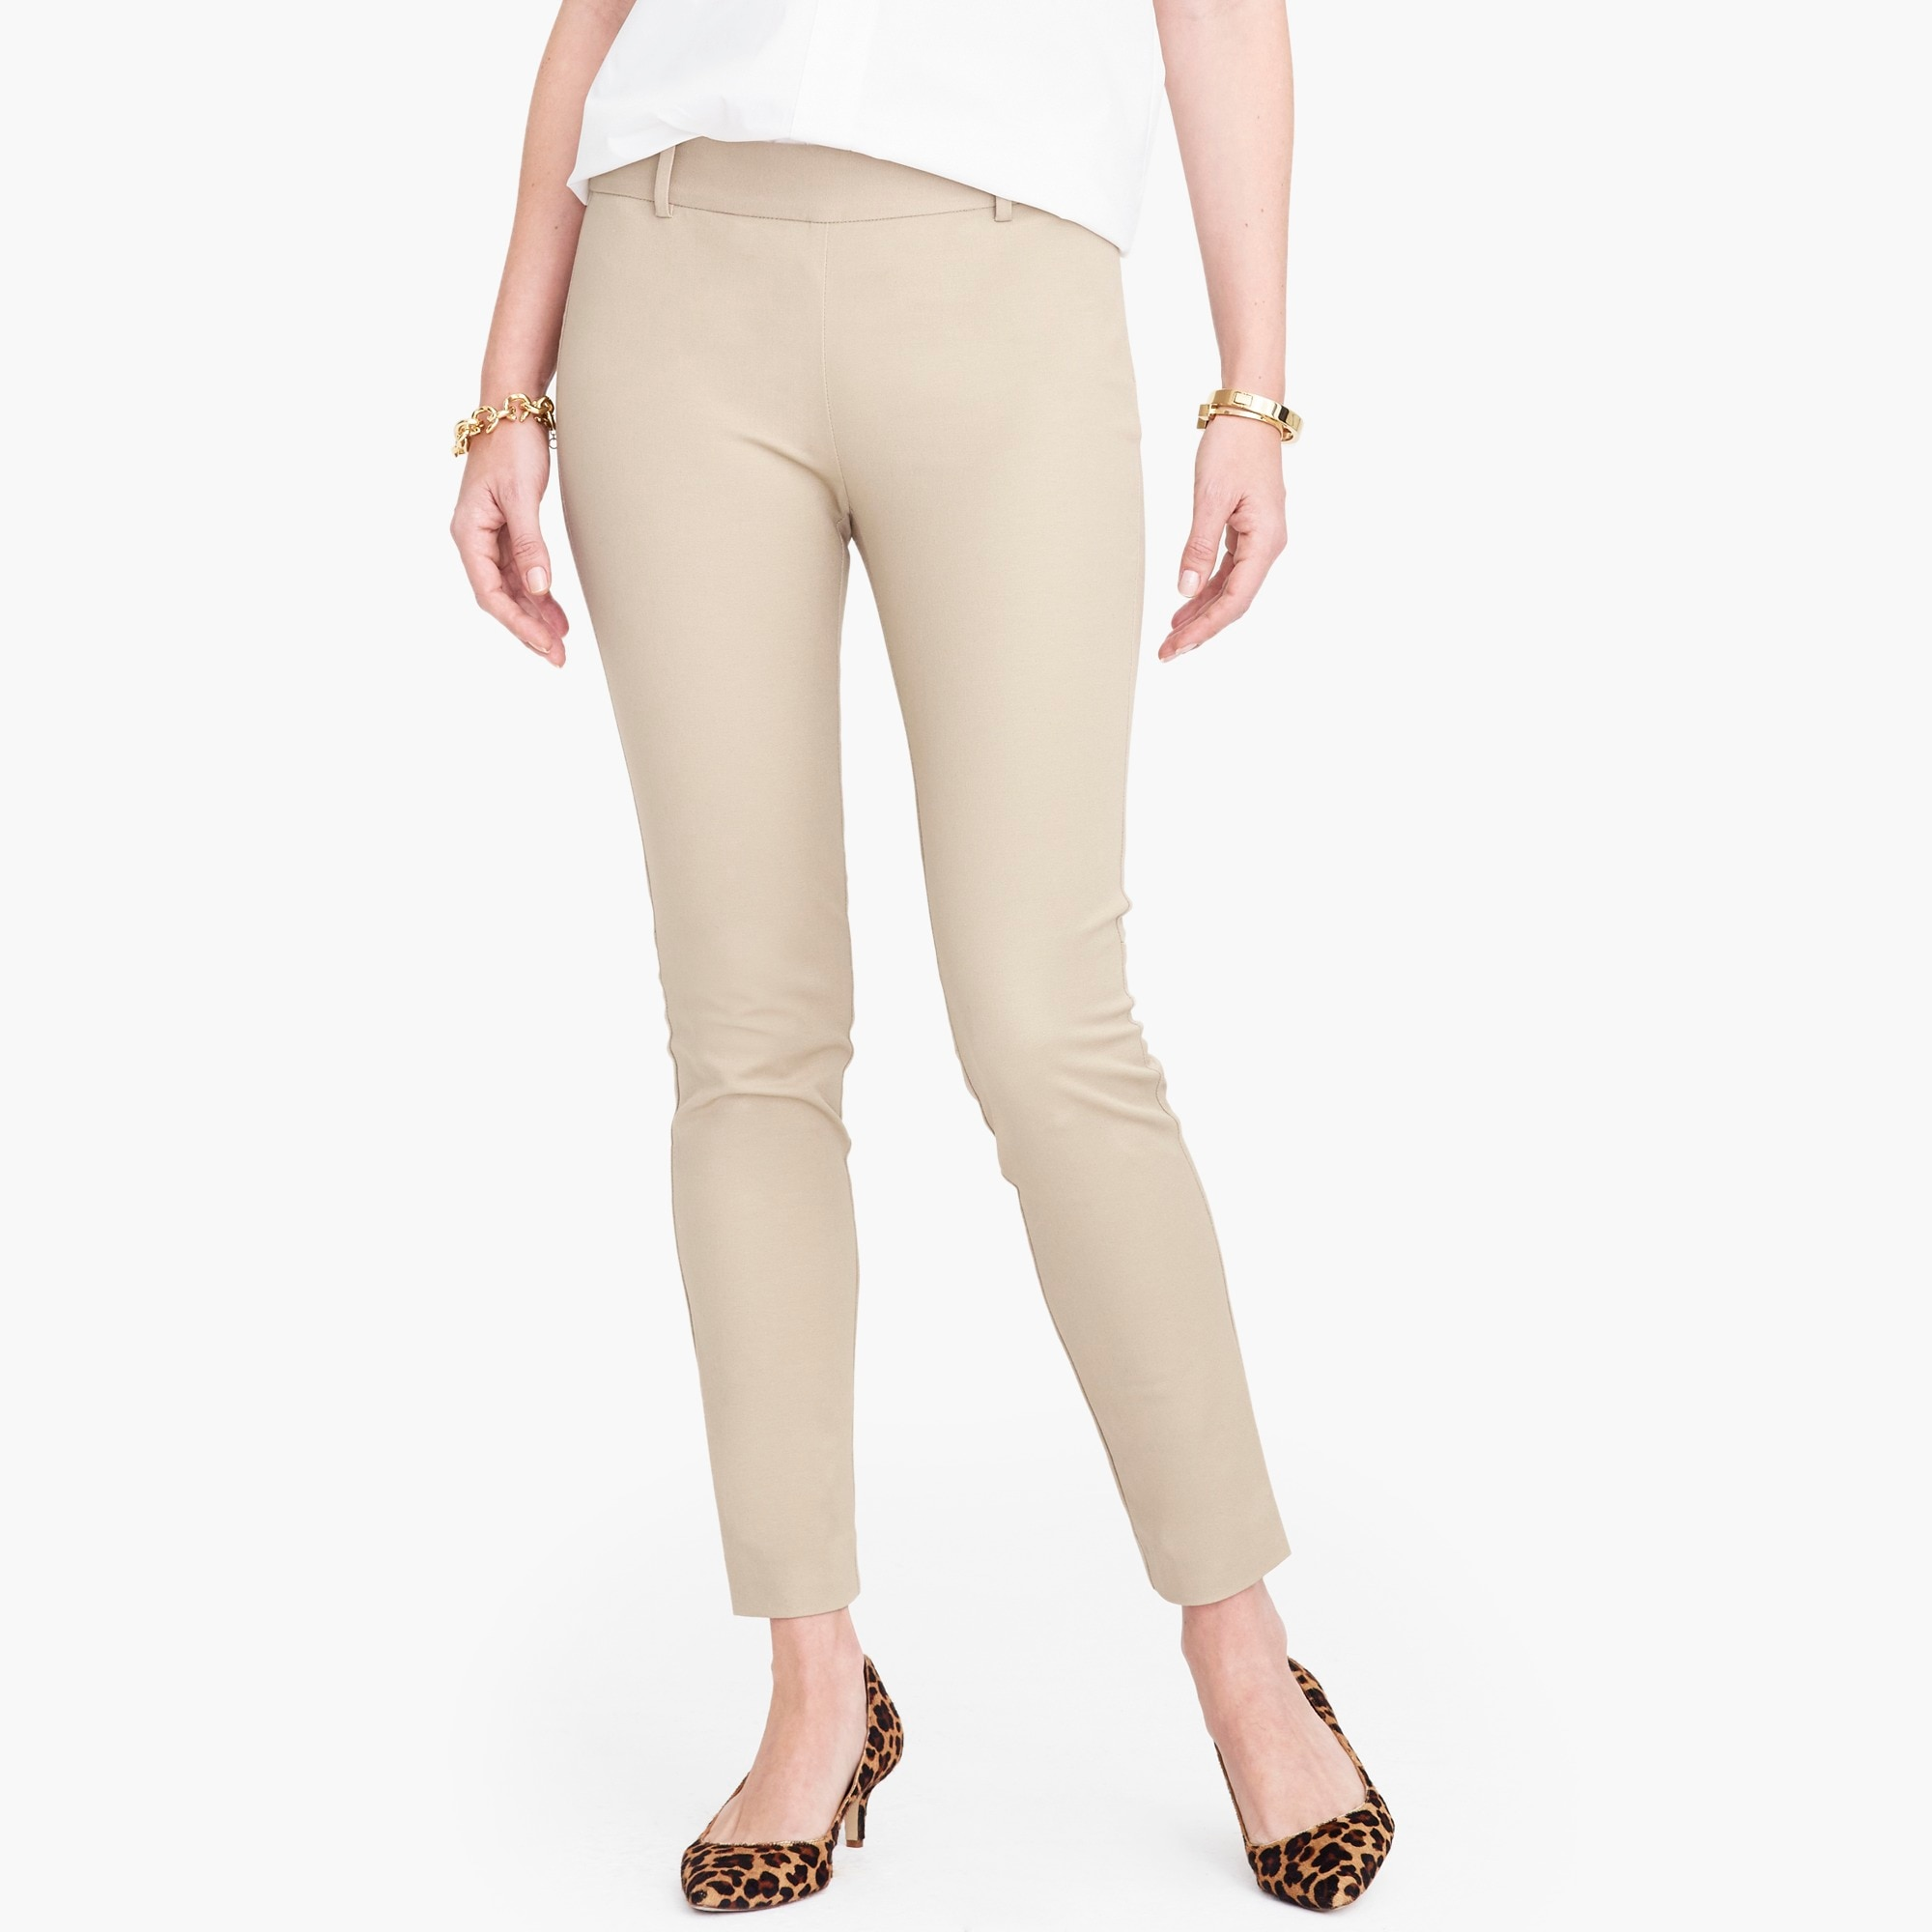 Winnie pant factorywomen sizes 18-20 c